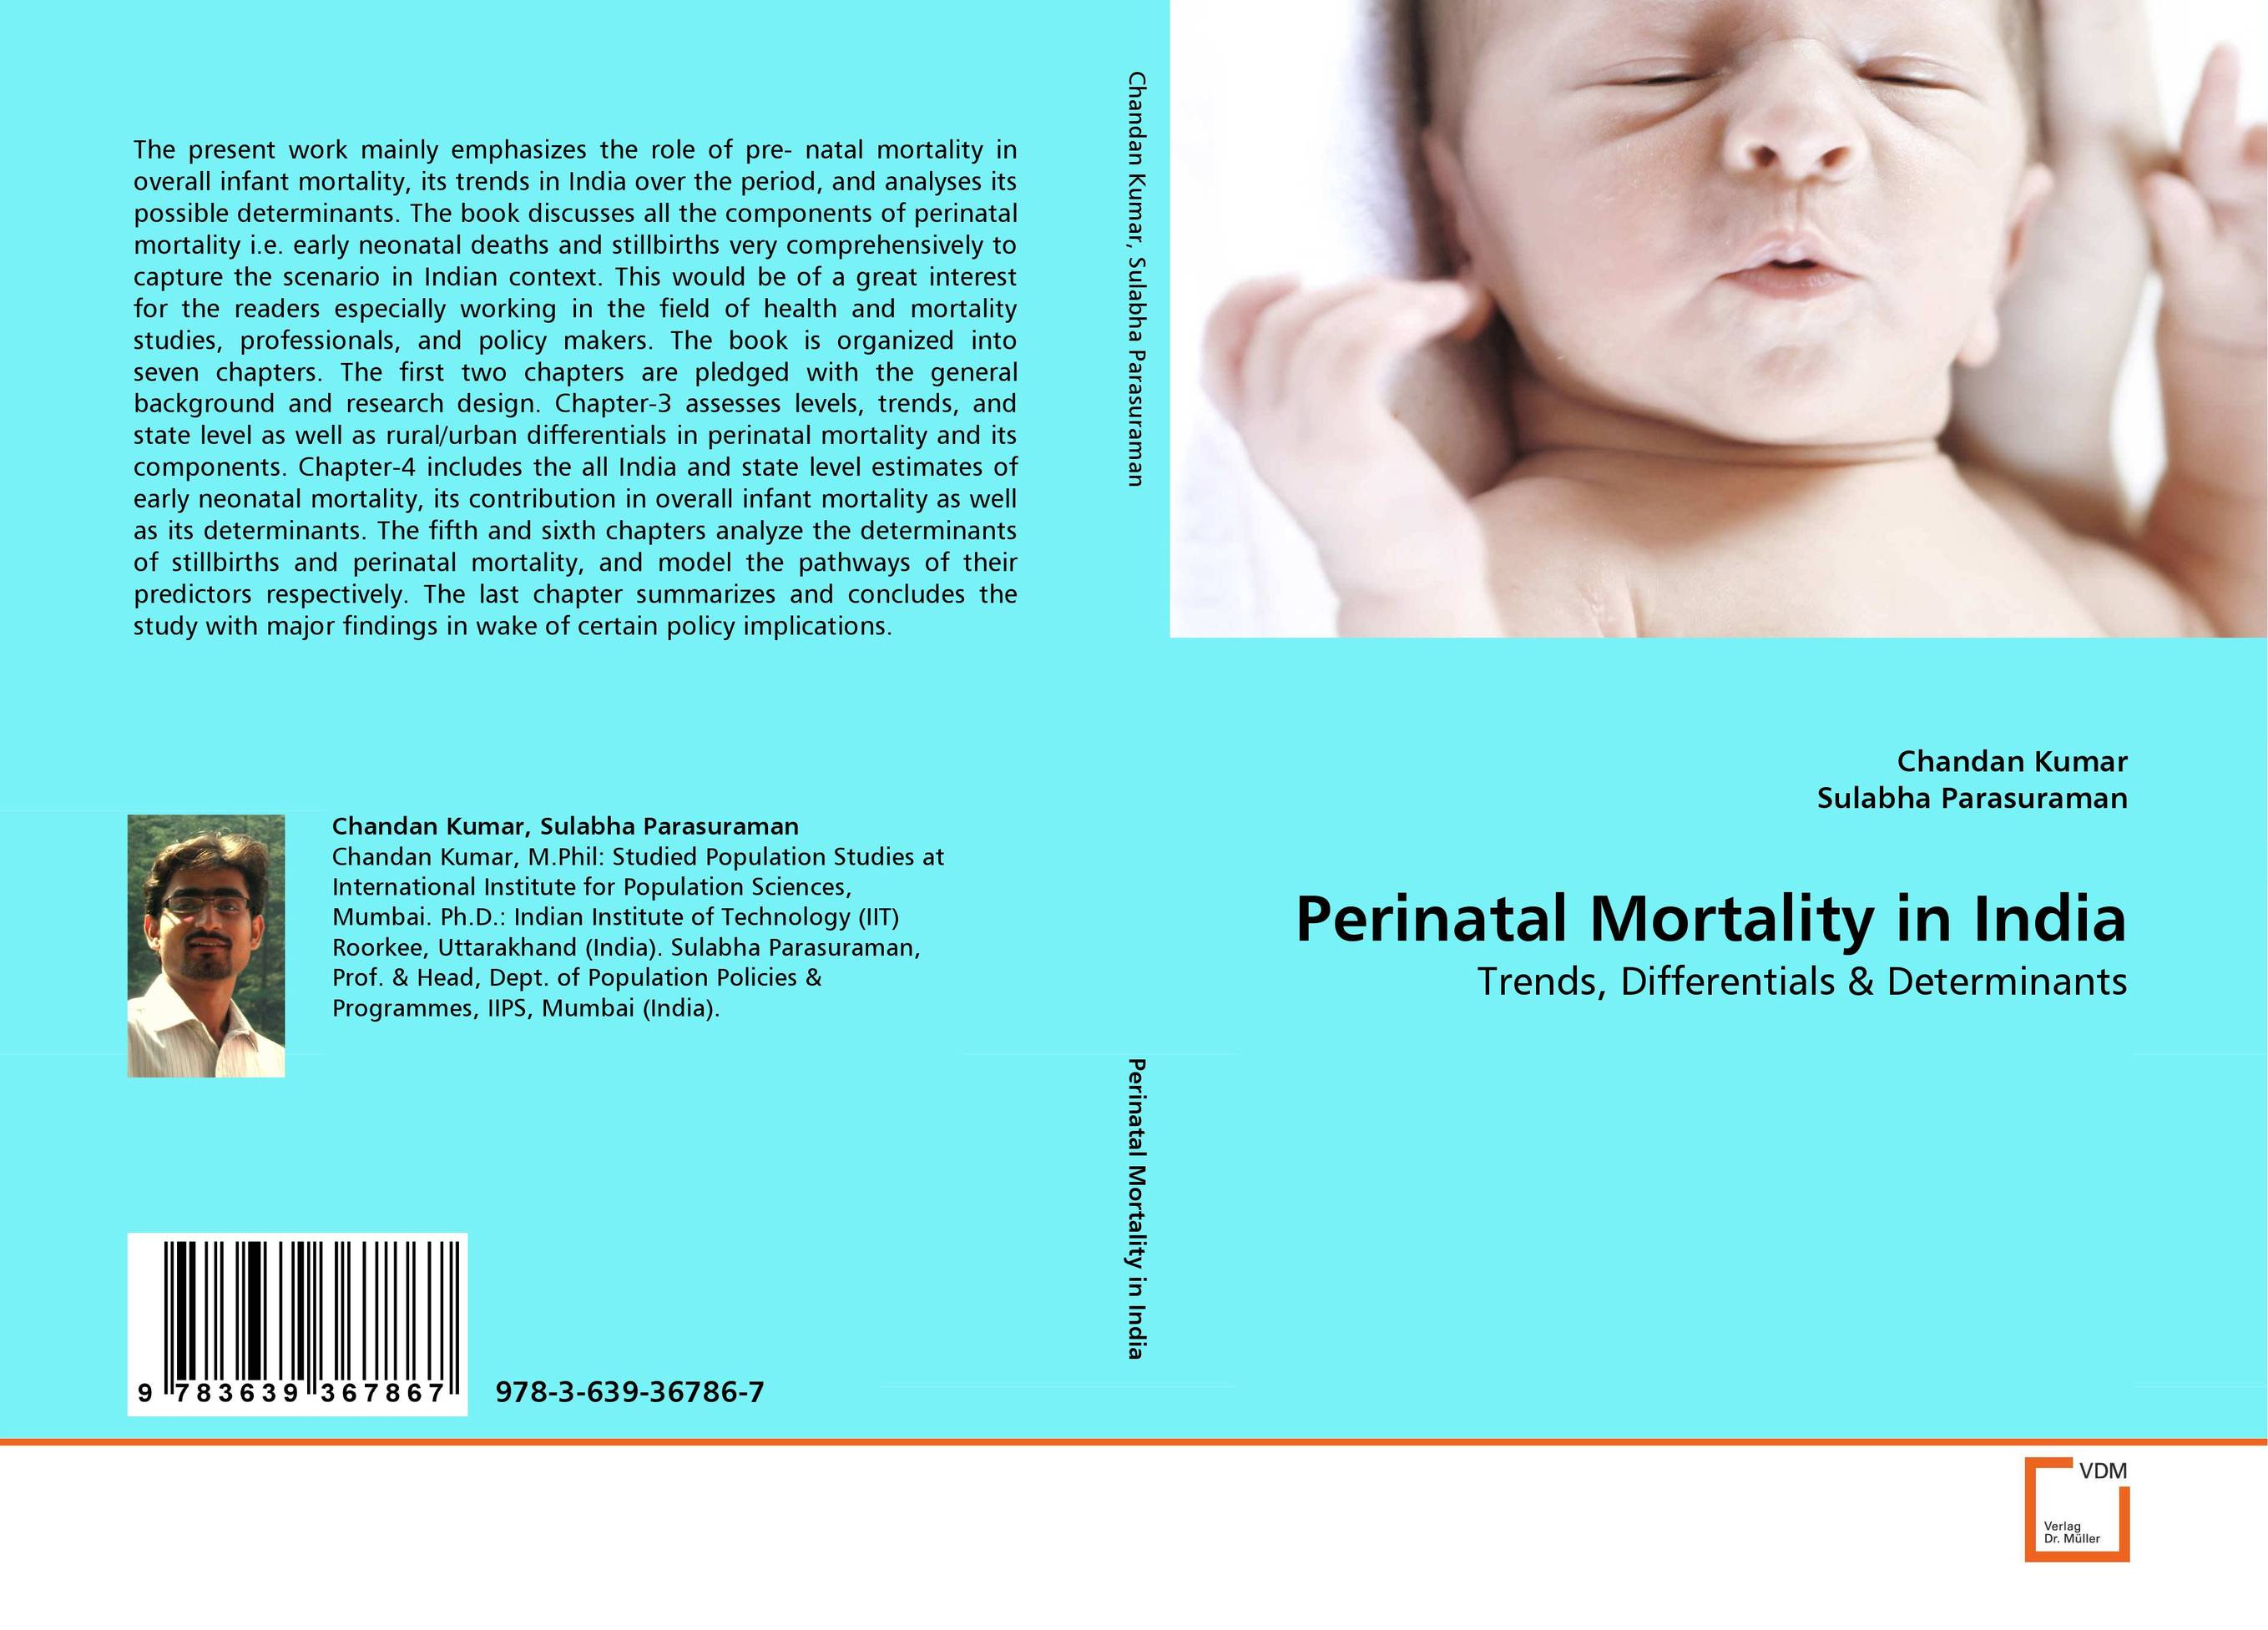 Perinatal Mortality in India